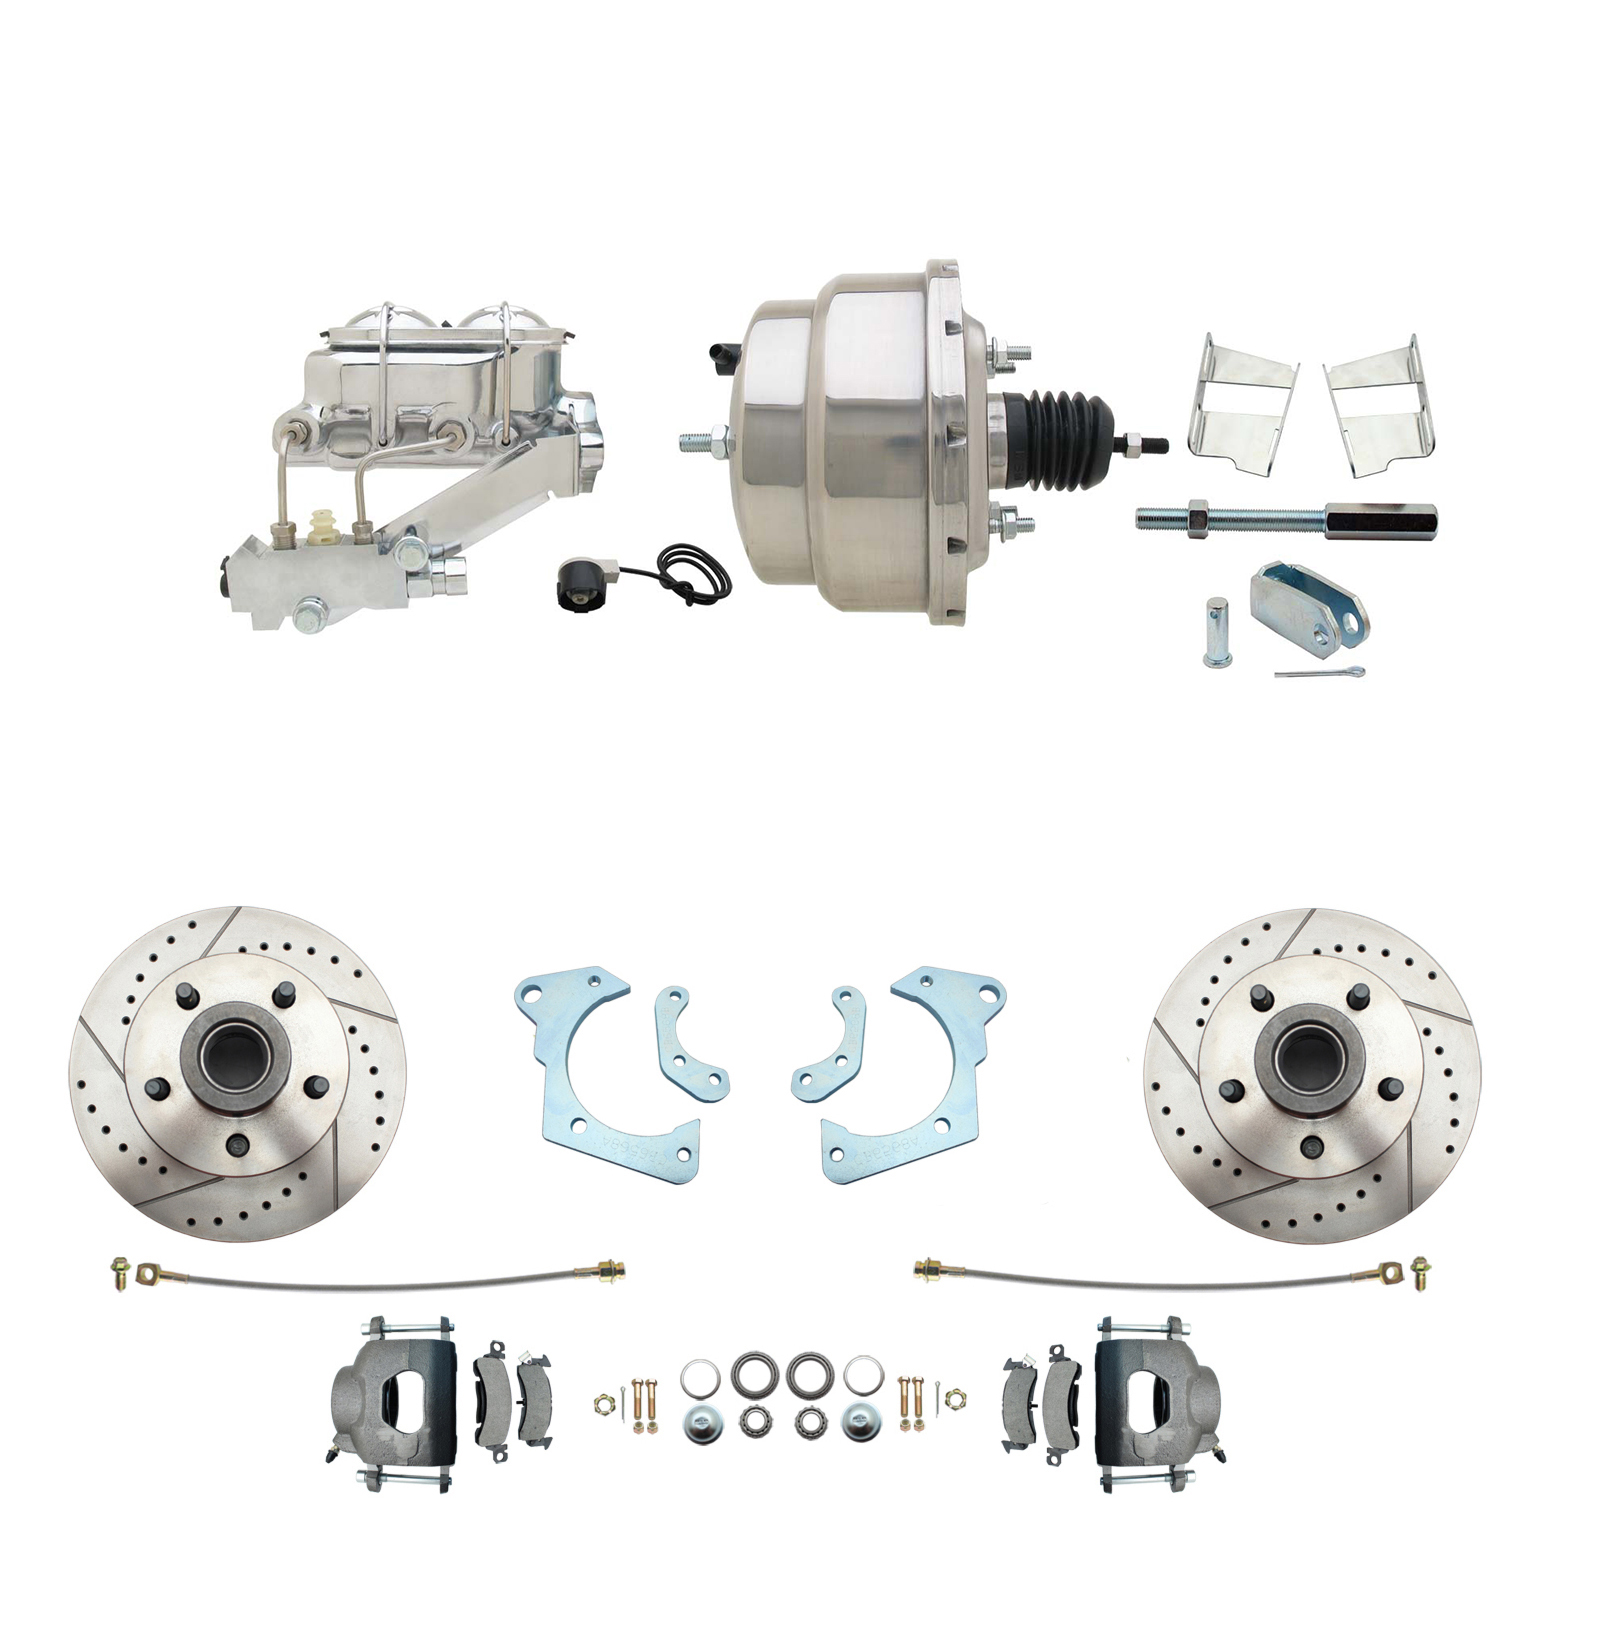 1965-1968 GM Full Size Disc Brake Kit Drilled/Slotted Rotors (Impala, Bel Air, Biscayne) & 8 Dual Stainless Steel Booster Conversion Kit W/ Chrome Master Cylinder Left Mount Disc/ Drum Proportioning Valve Kit